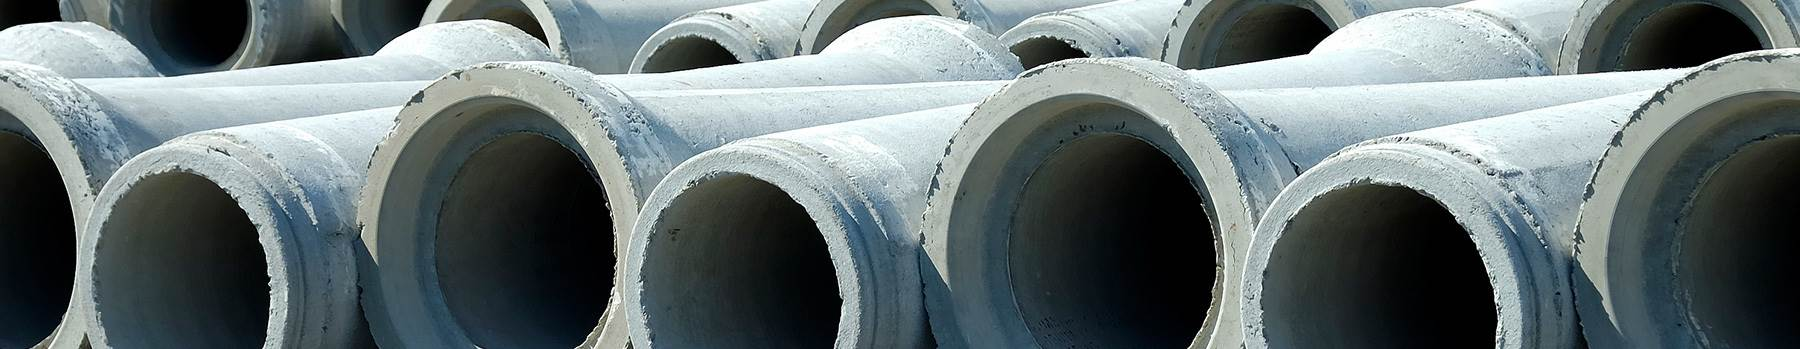 hero_WasteWater_Coll-Netw_iSt_812242L_sewer-pipes